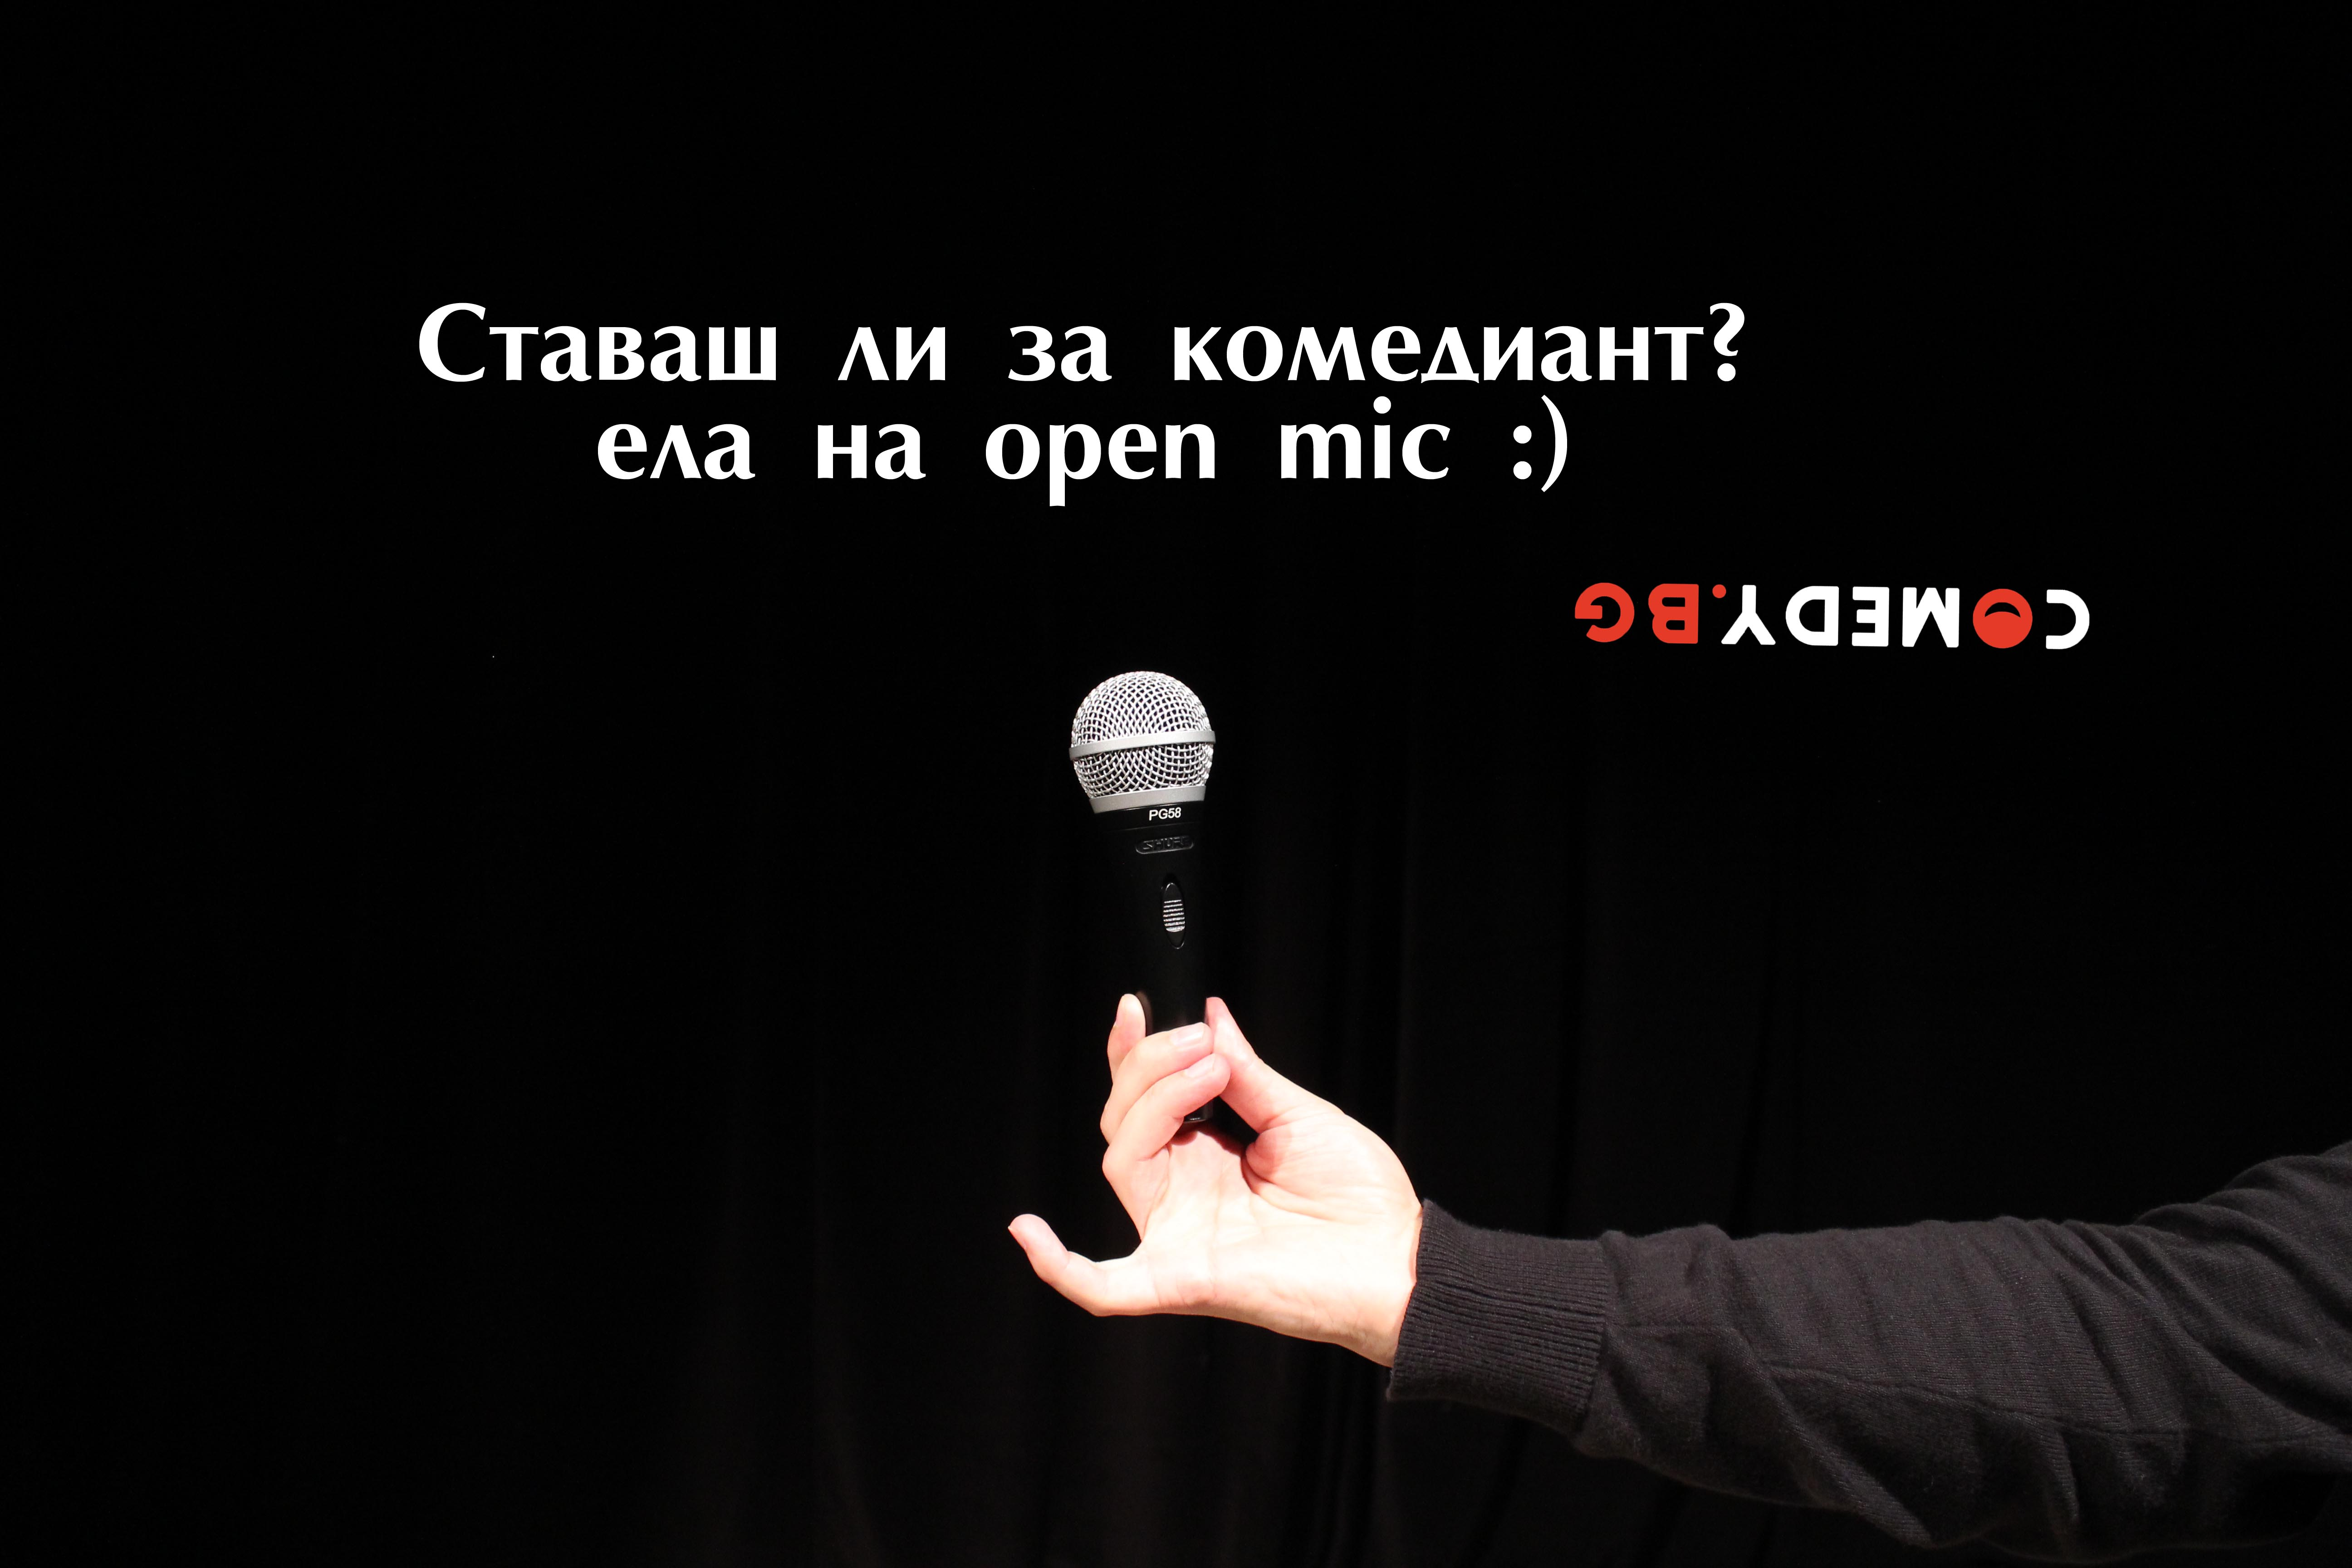 stand up comedy bulgaria open mic